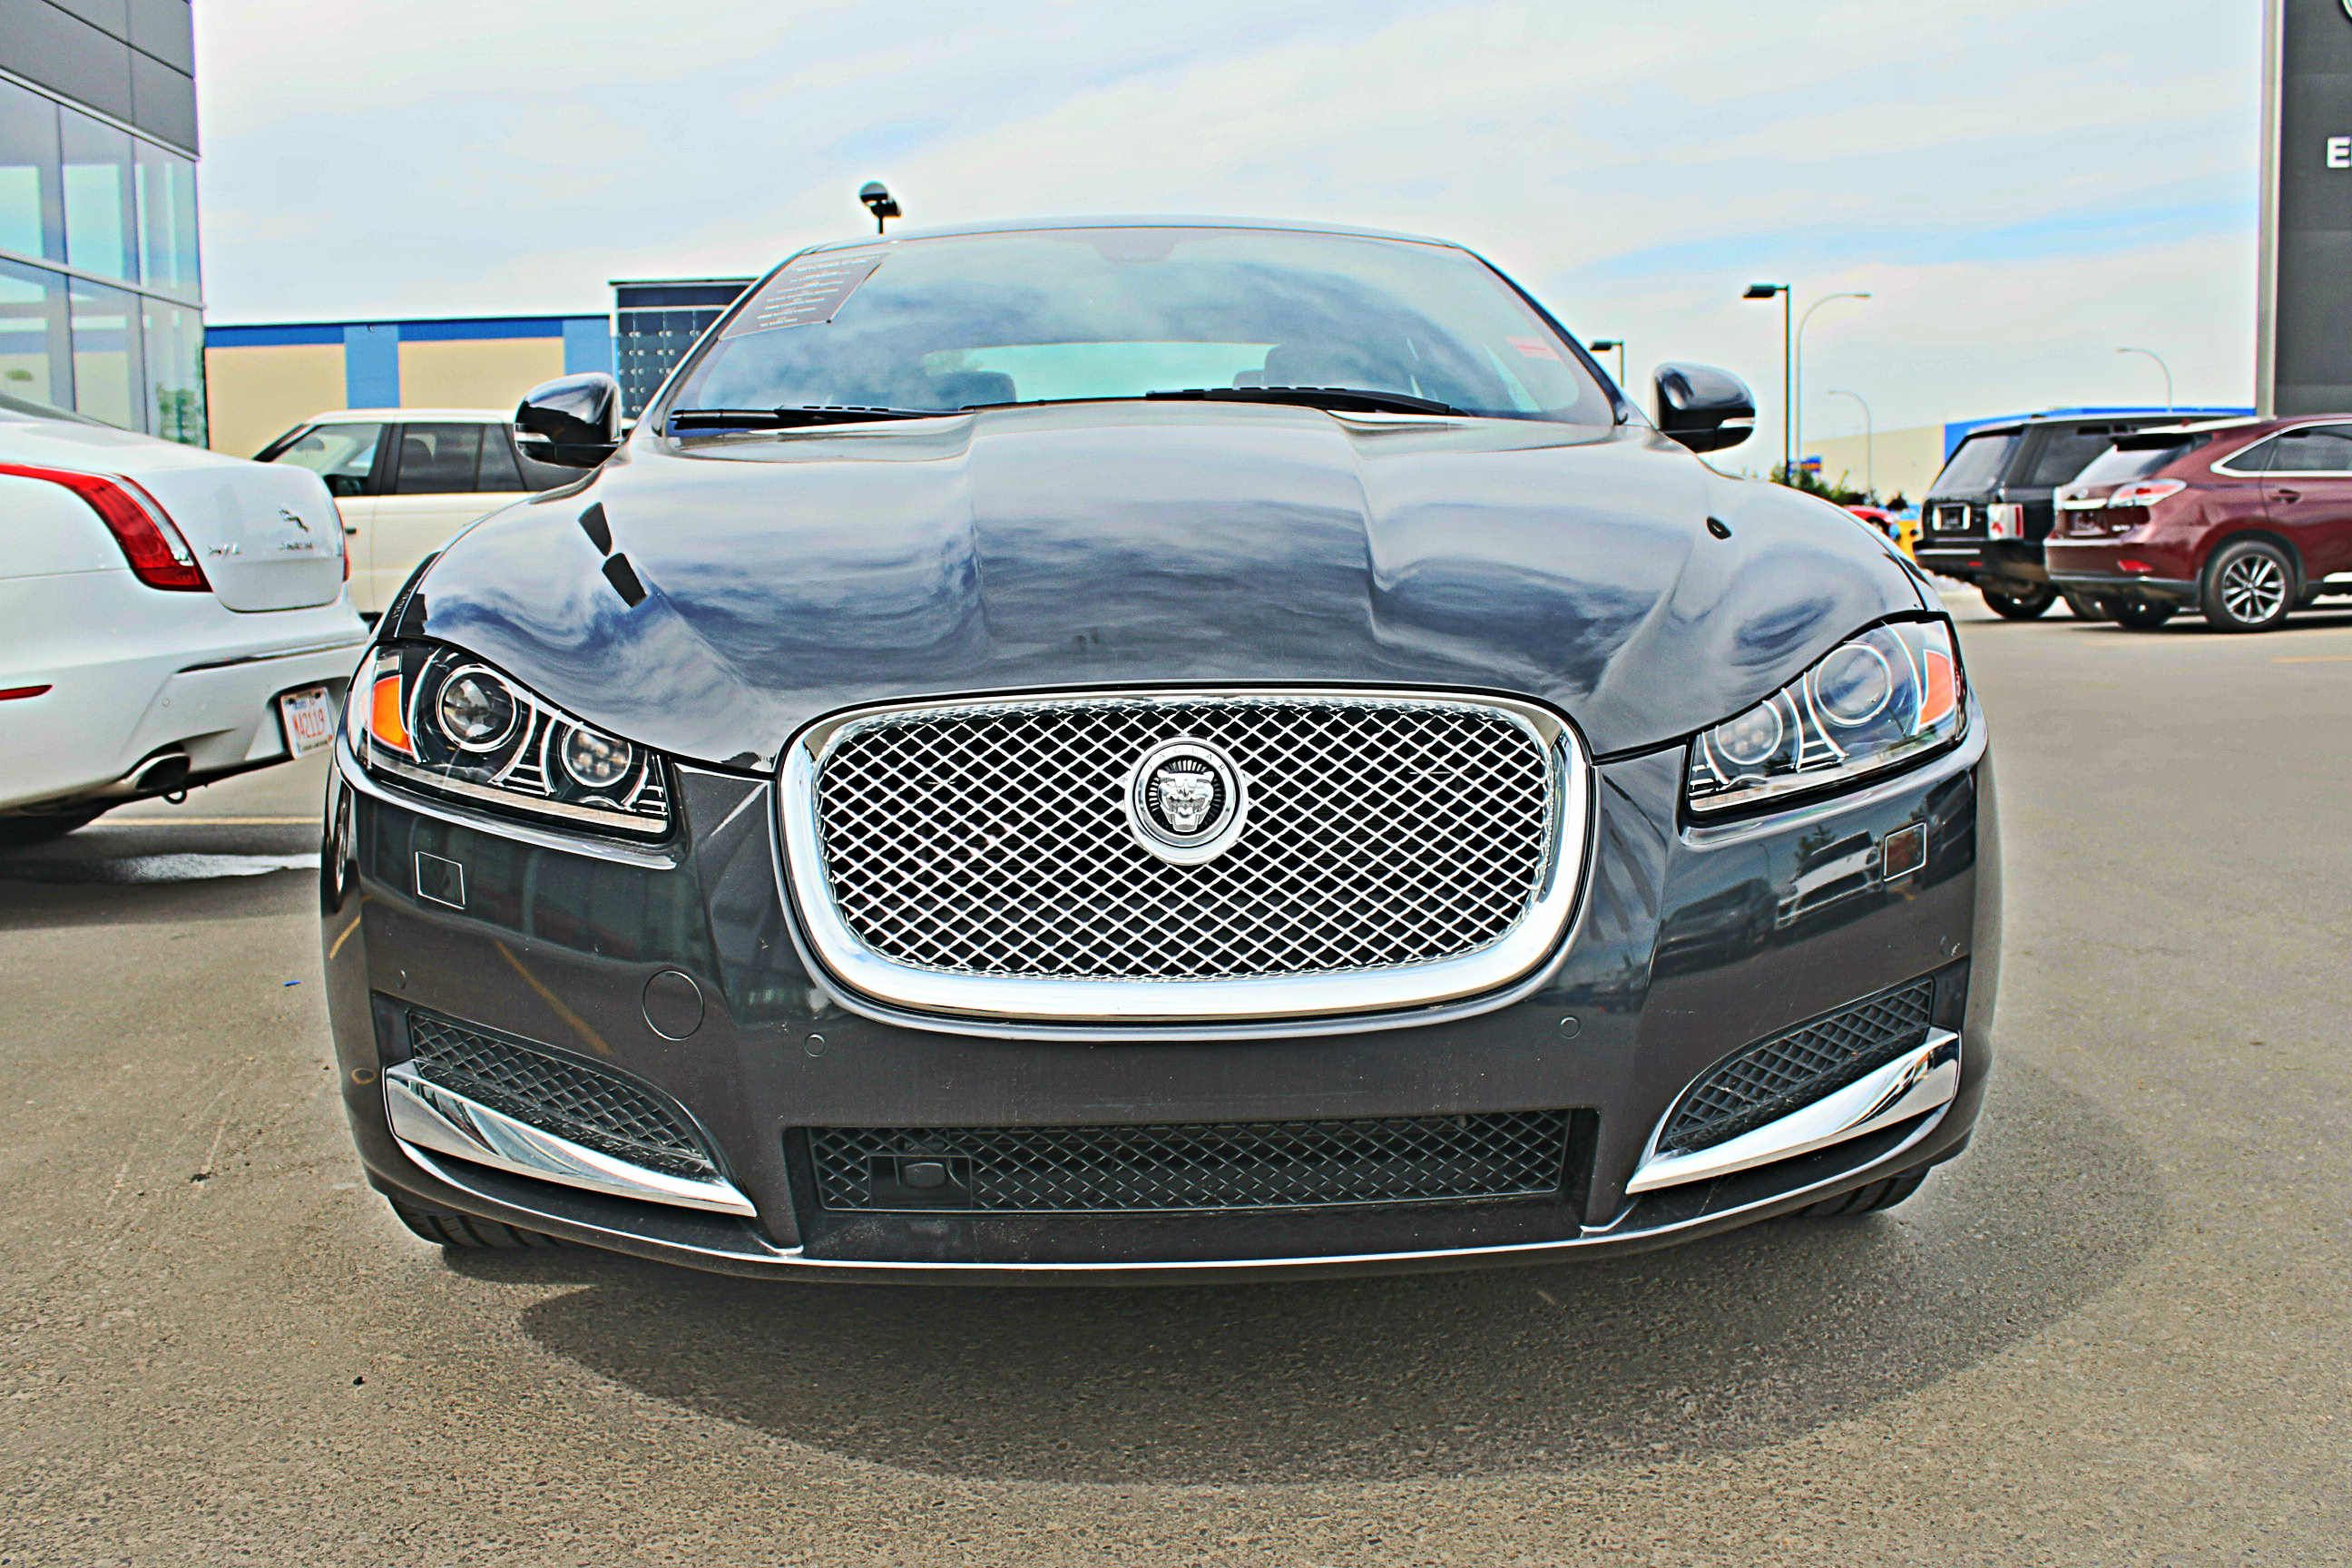 sport xf cars trim awd jaguar sale r used motors year co for uk